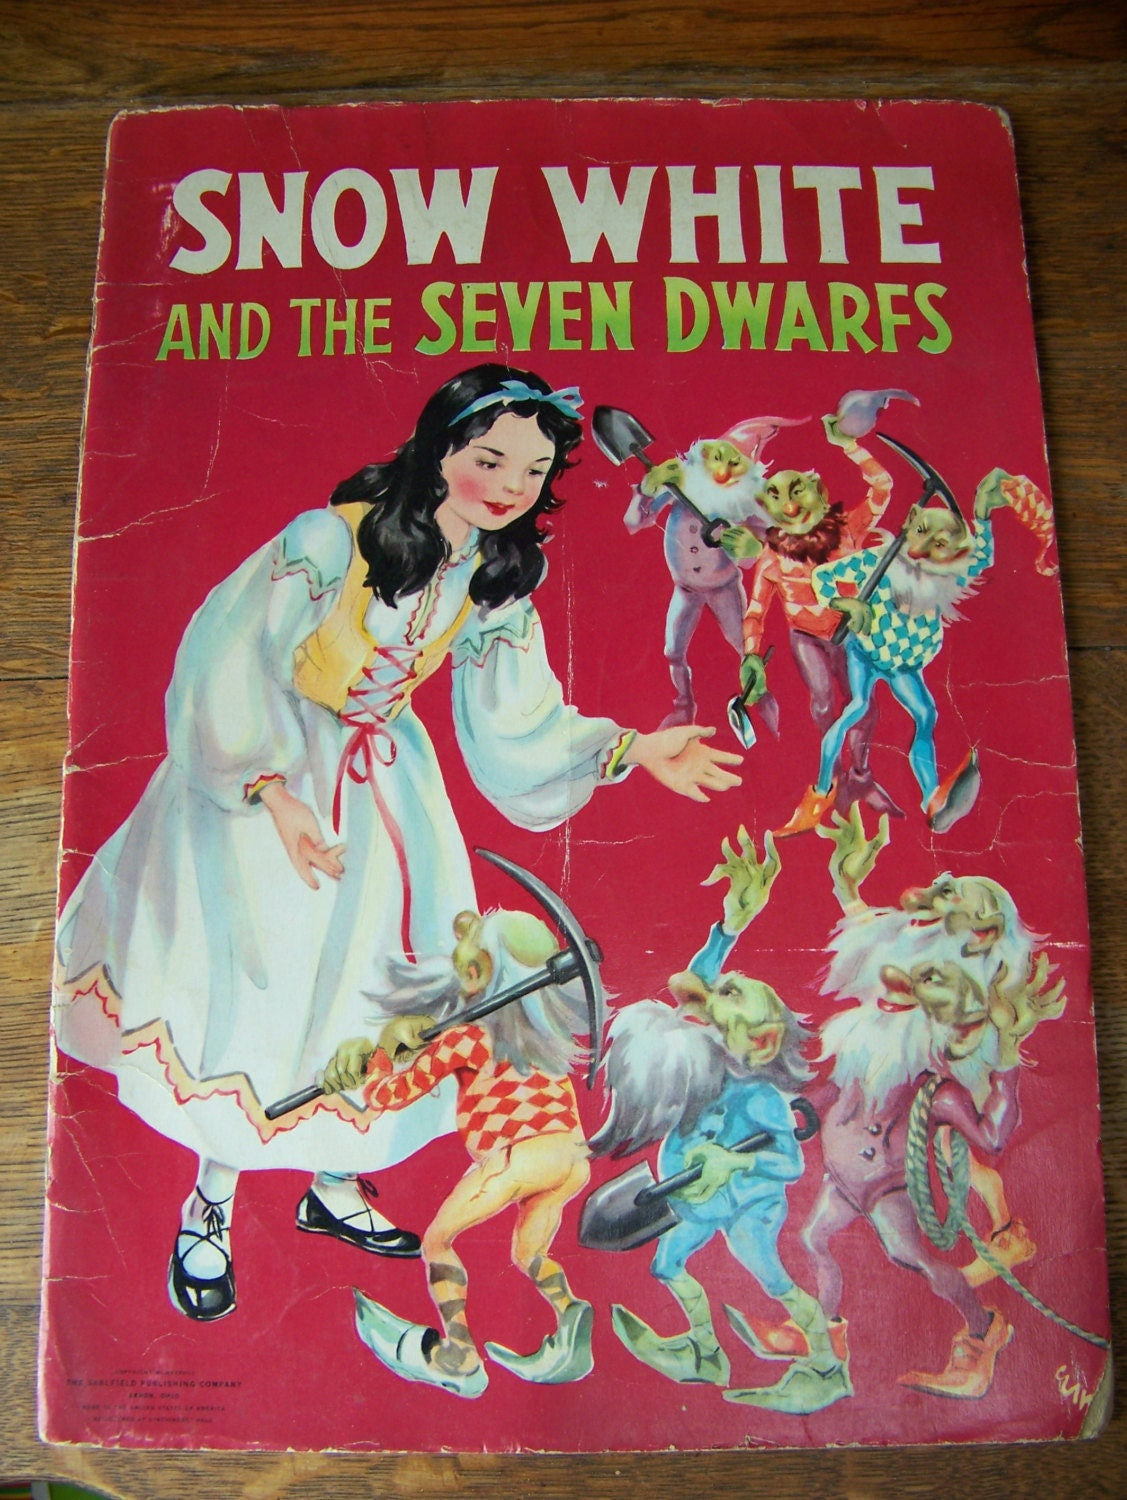 Vintage 1938 Snow White and the Seven Dwarfs Little Red